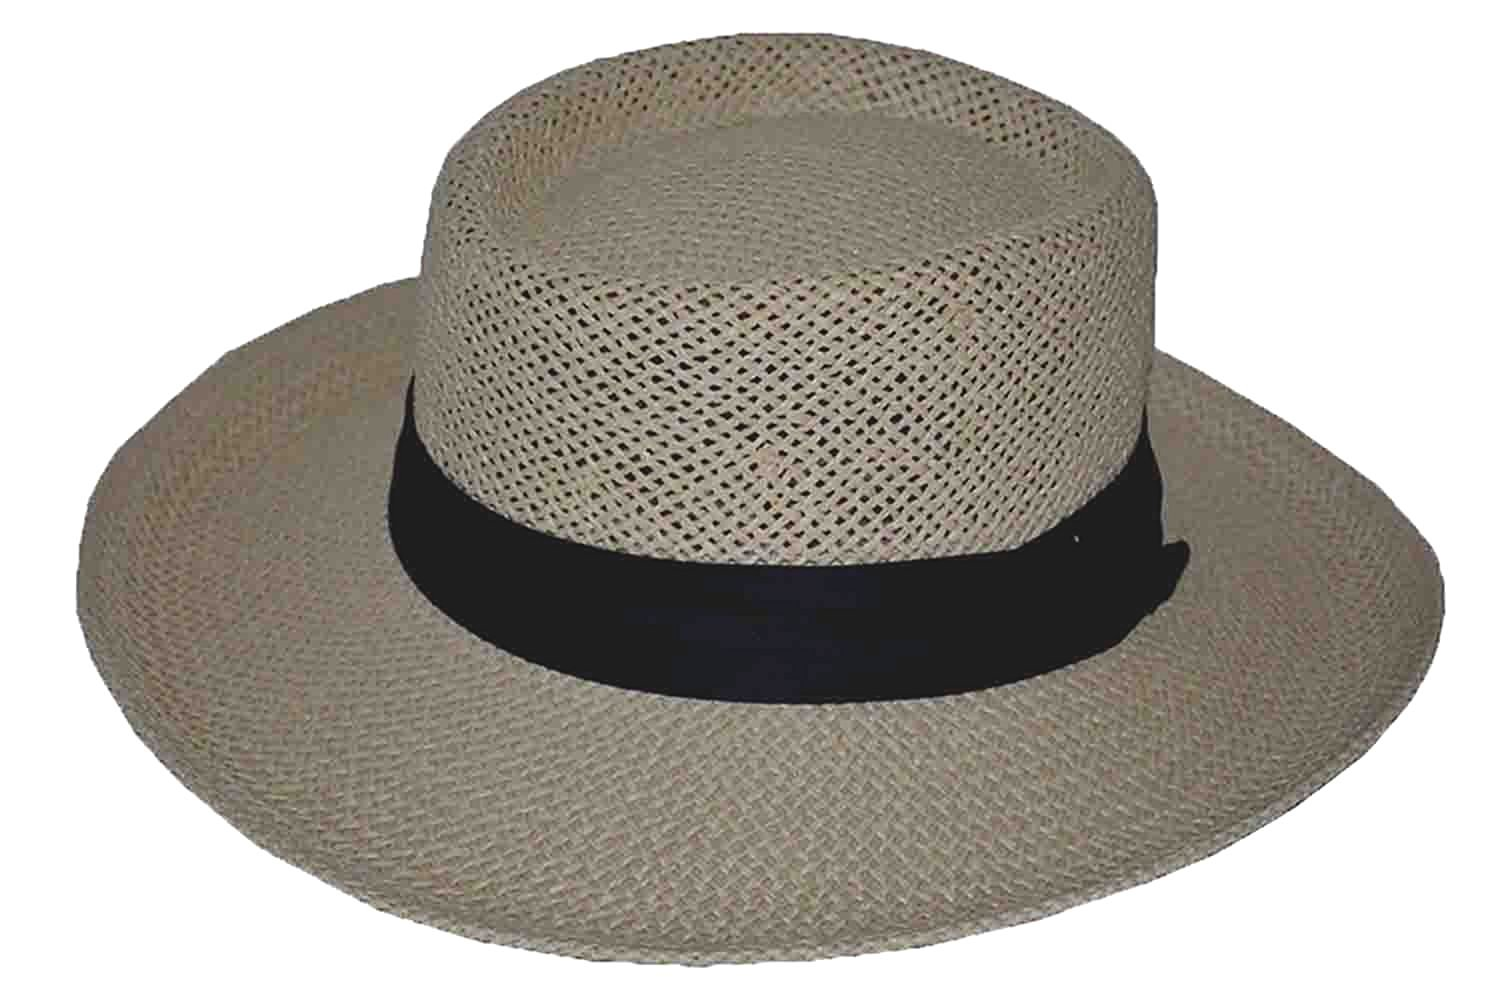 e6869792d49 Get Quotations · BKO Straw Gambler Hat with Black Band